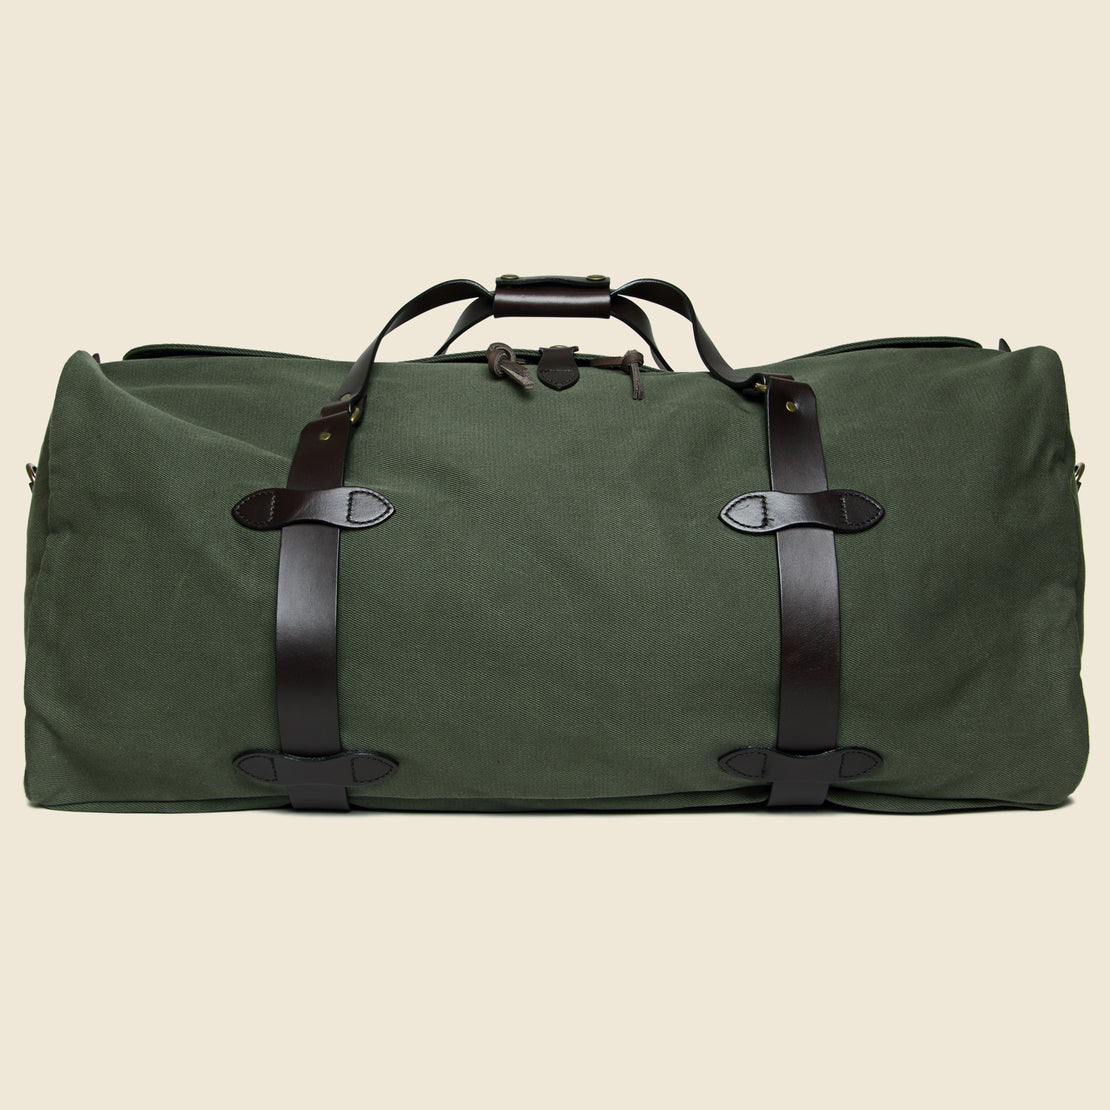 Filson Large Duffle Bag - Otter Green